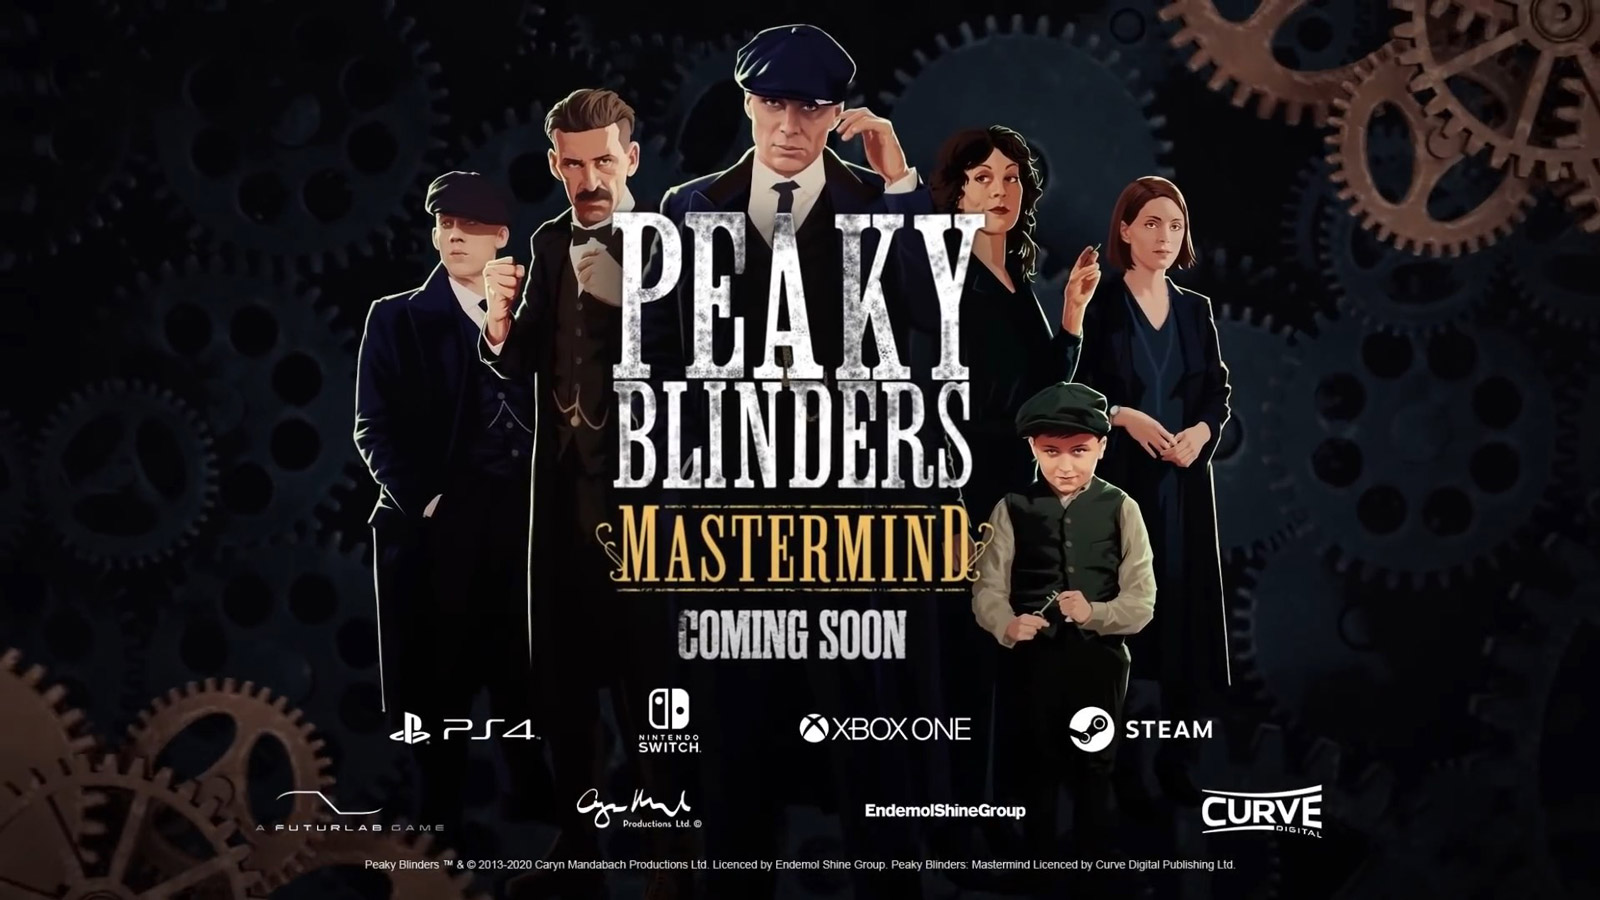 Free Peaky Blinders: Mastermind Wallpaper in 1600x900